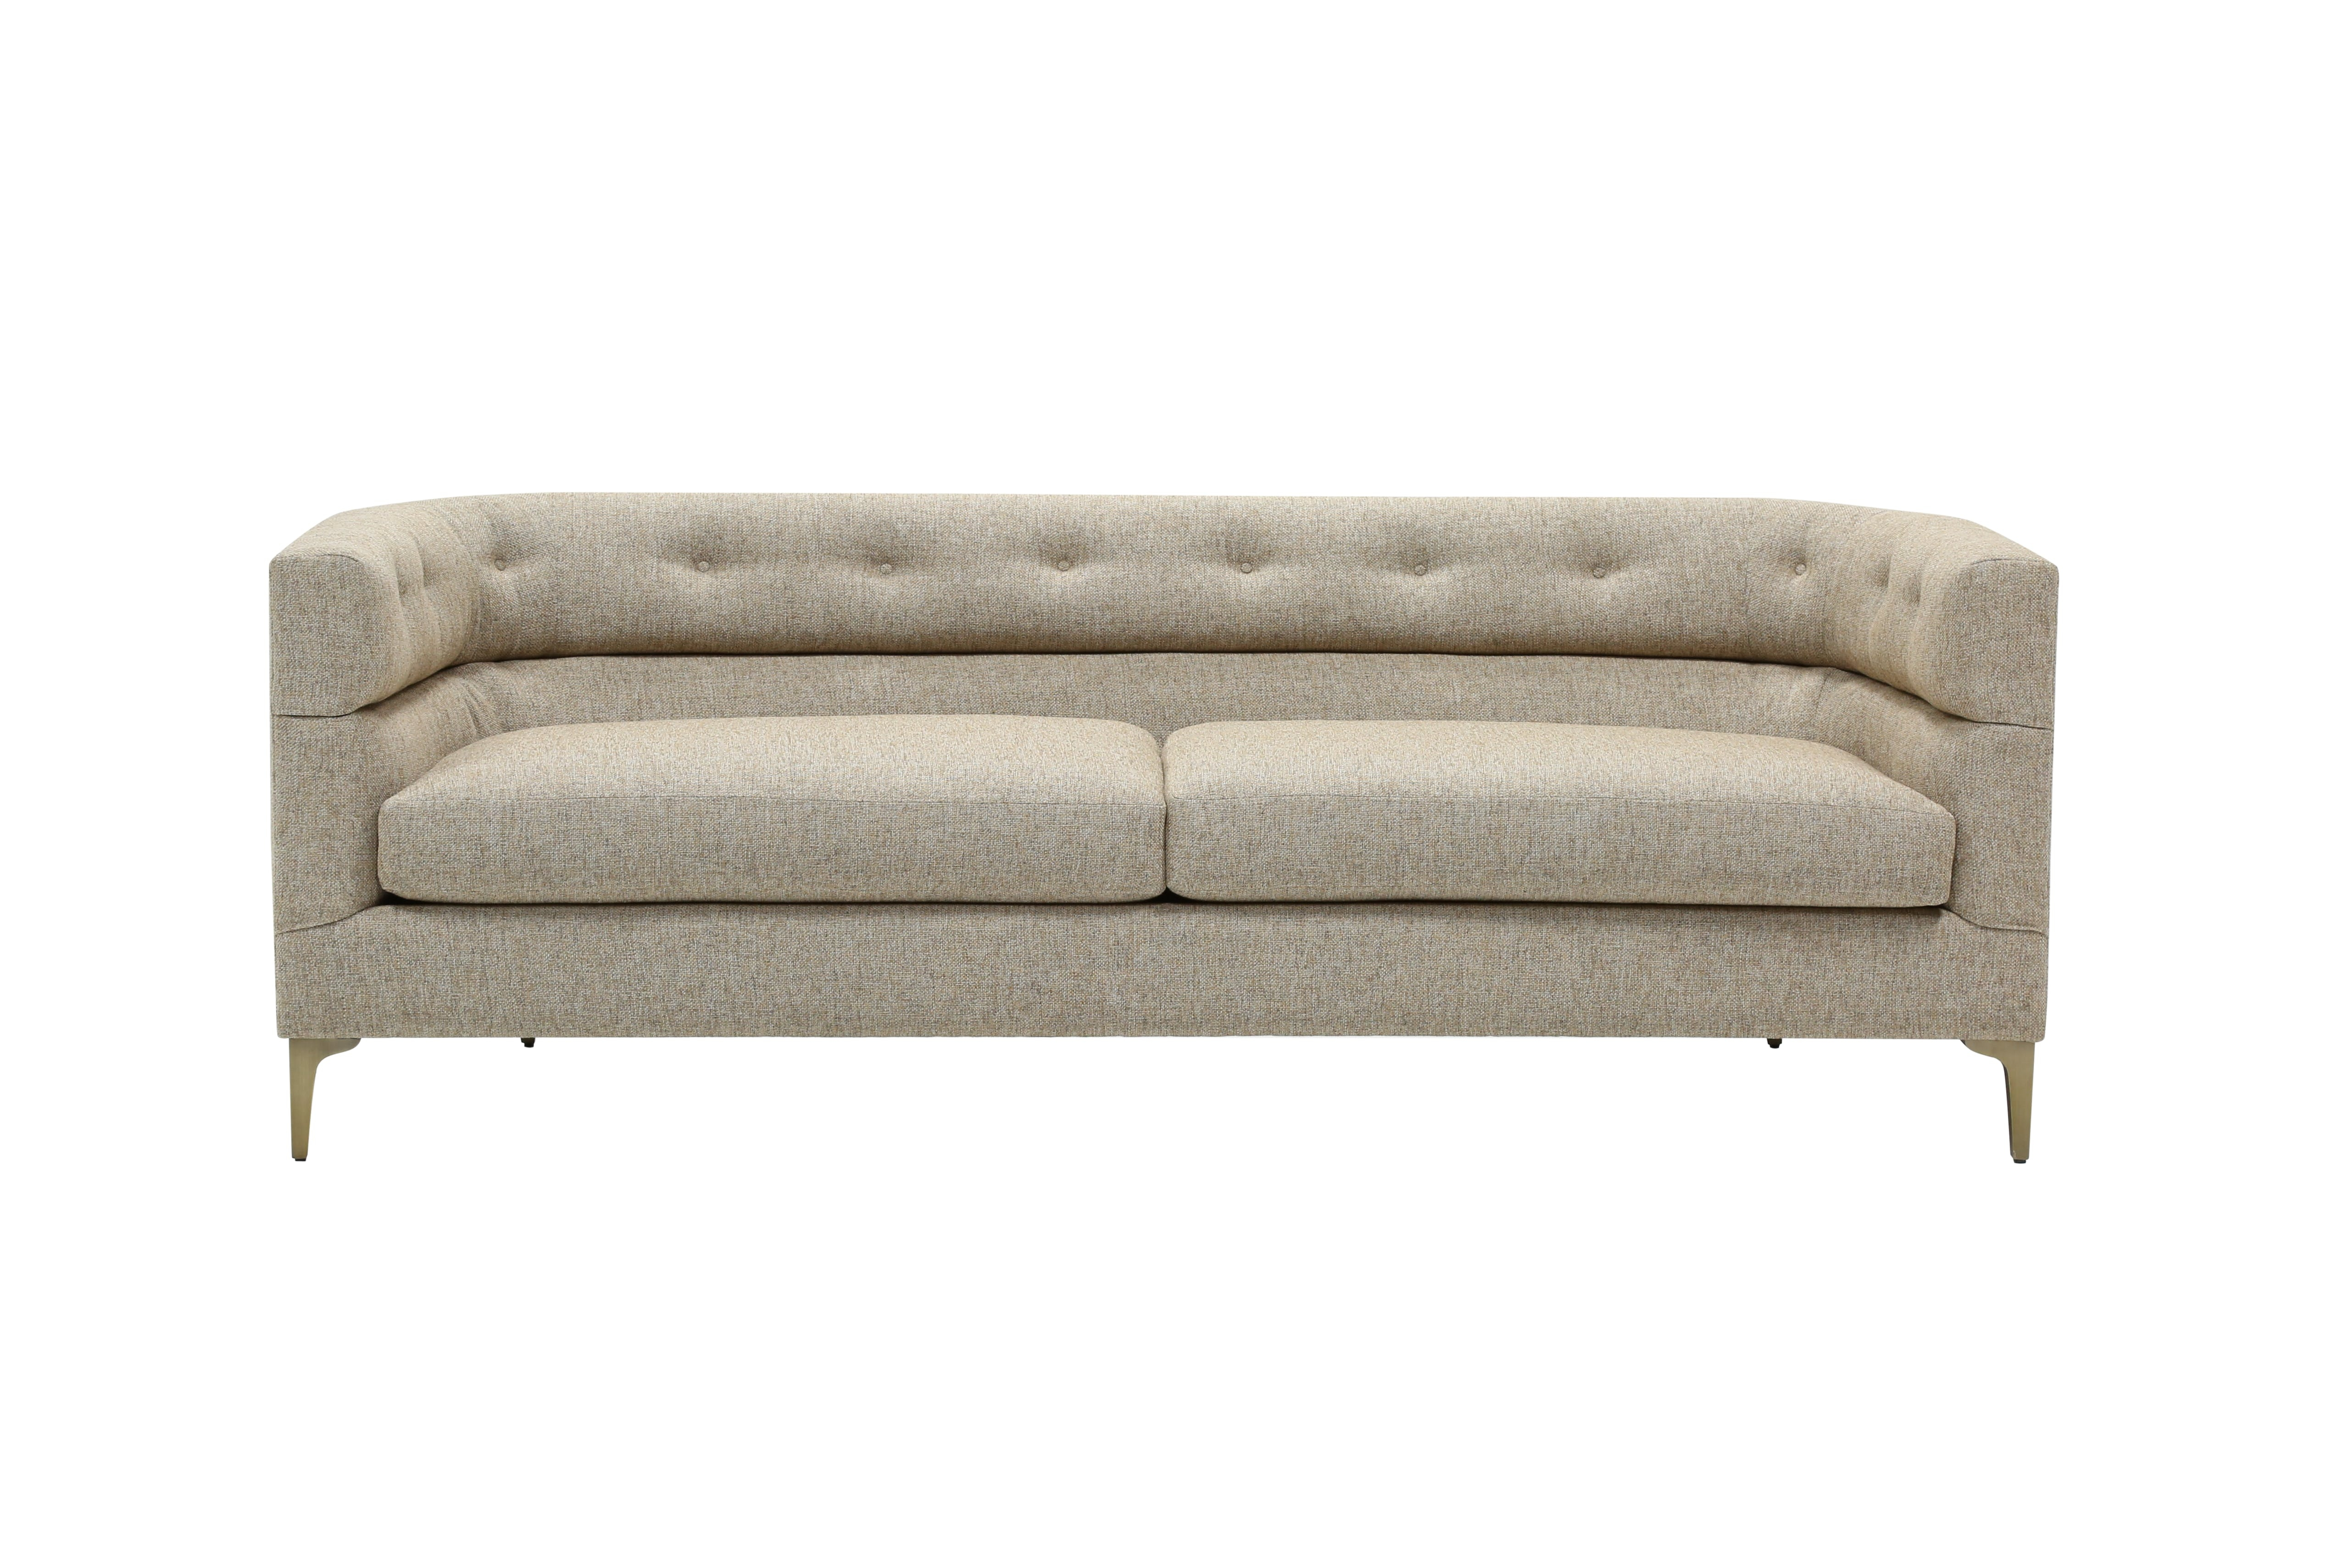 Nate Berkus Just Launched A Home Collection With Hubby Jeremiah regarding Whitley 3 Piece Sectionals By Nate Berkus And Jeremiah Brent (Image 21 of 32)